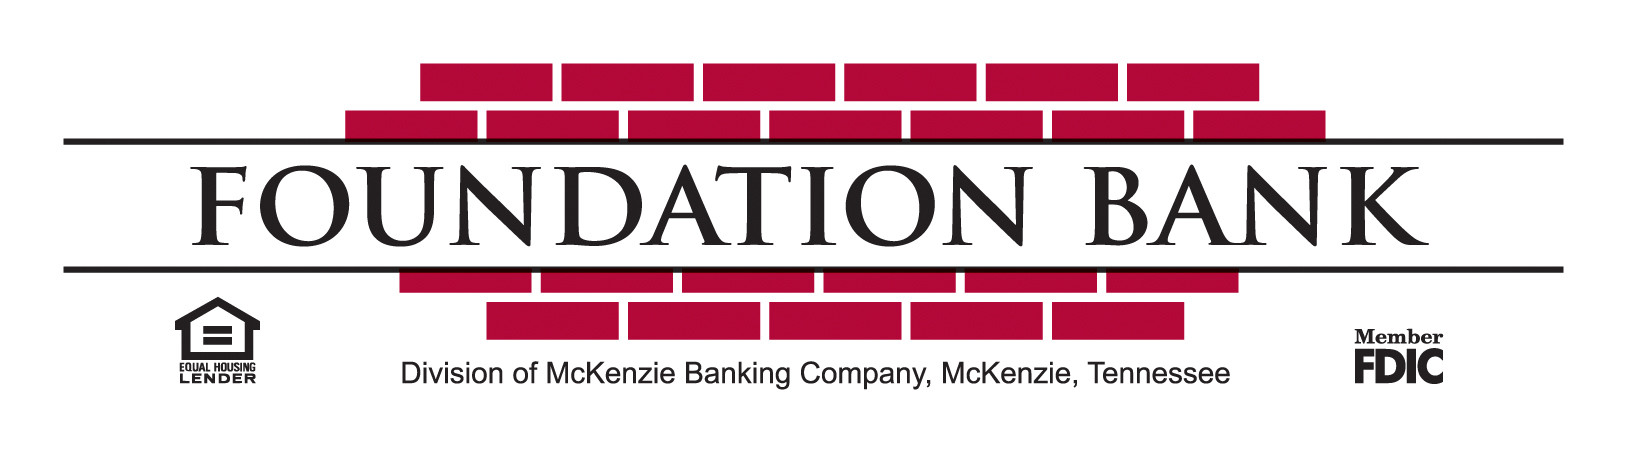 Foundation Bank - MILE MARKER MIRACLE SPONSOR for Christian Powell